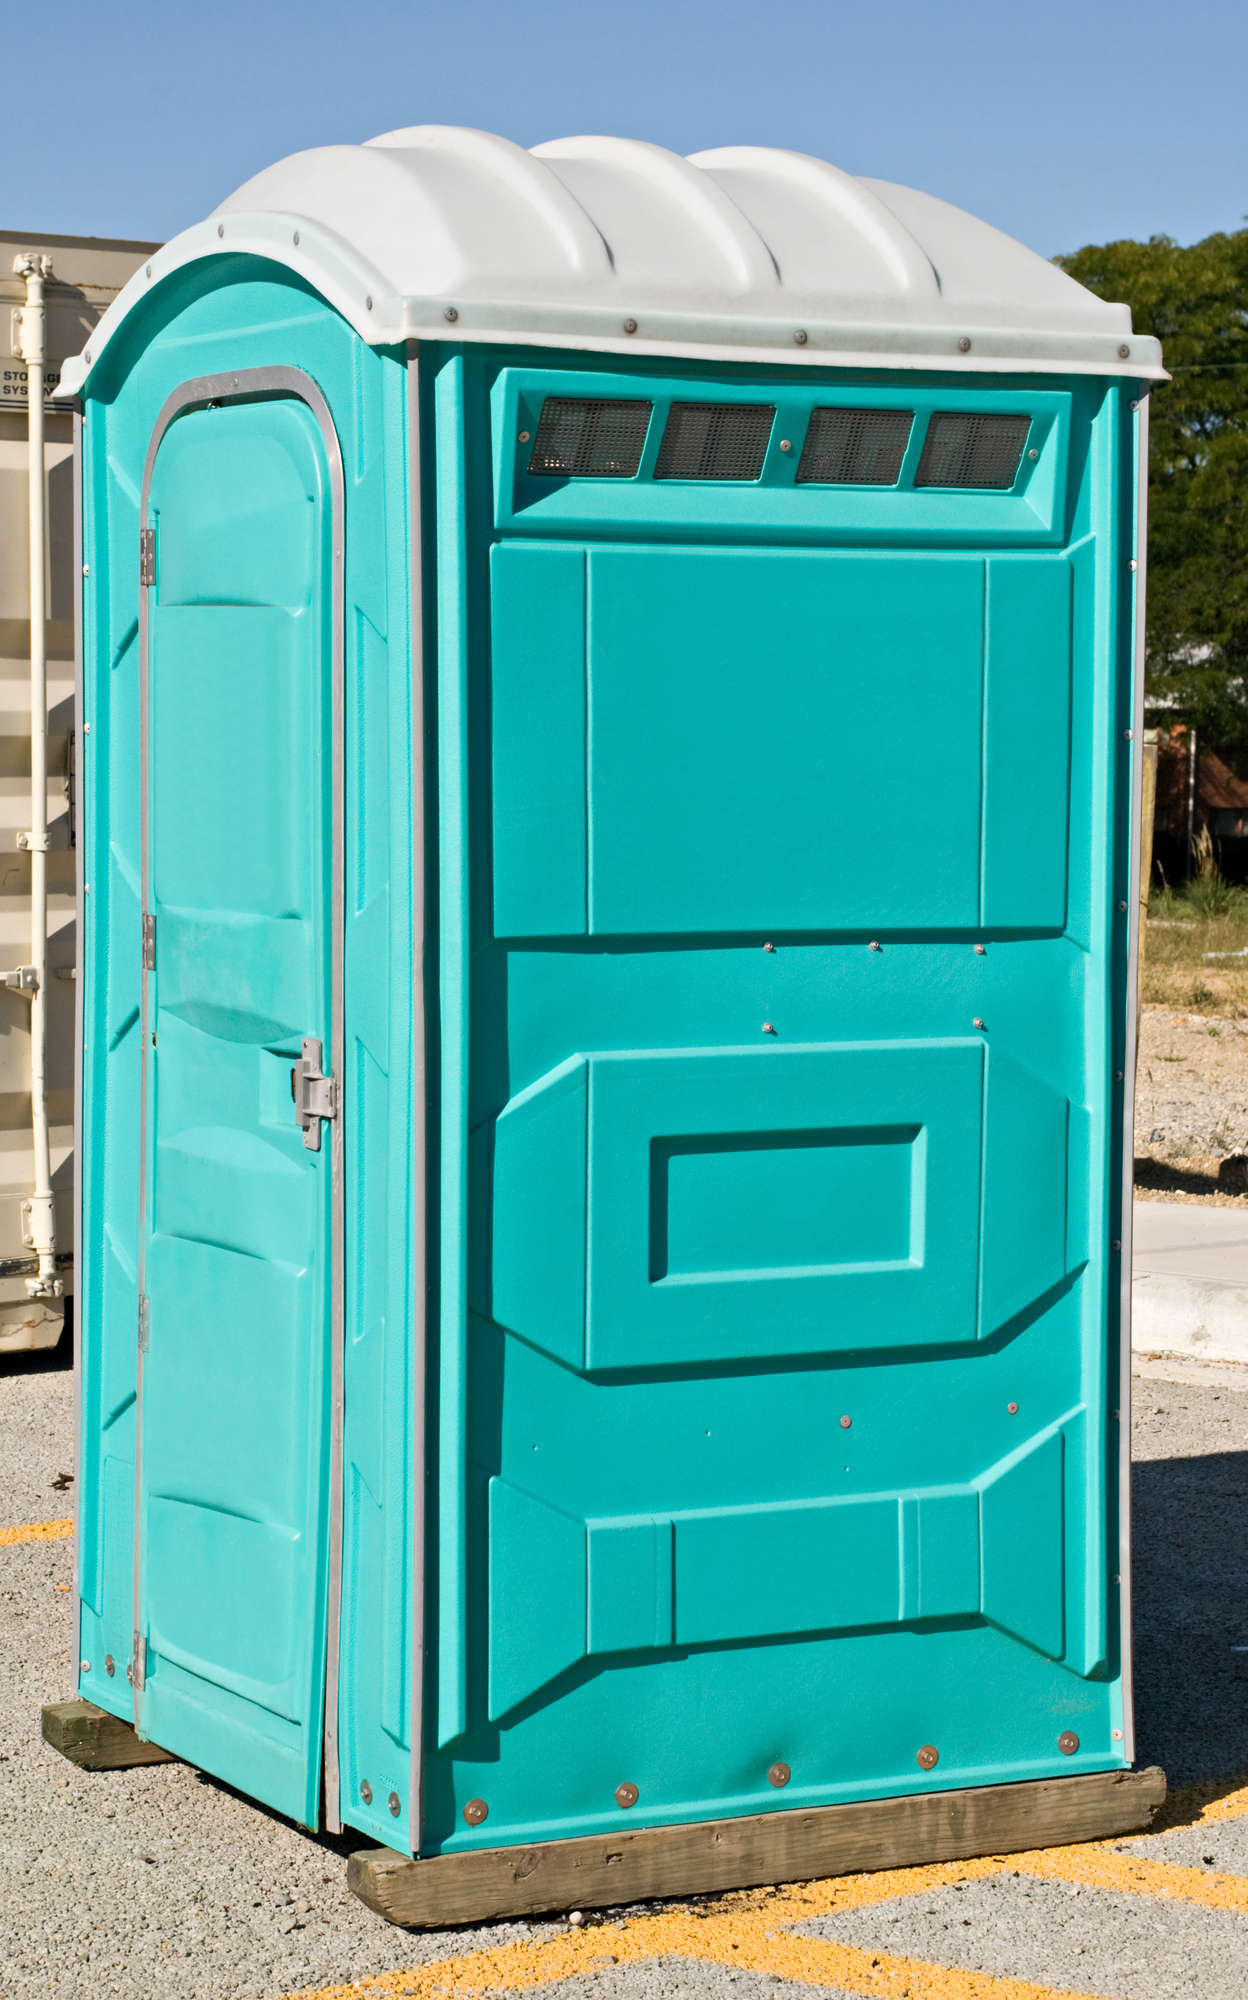 5 Practical Advantages Of Porta Potty Rentals For Construction Sites Jiffy Biffy Bruce Nearsay